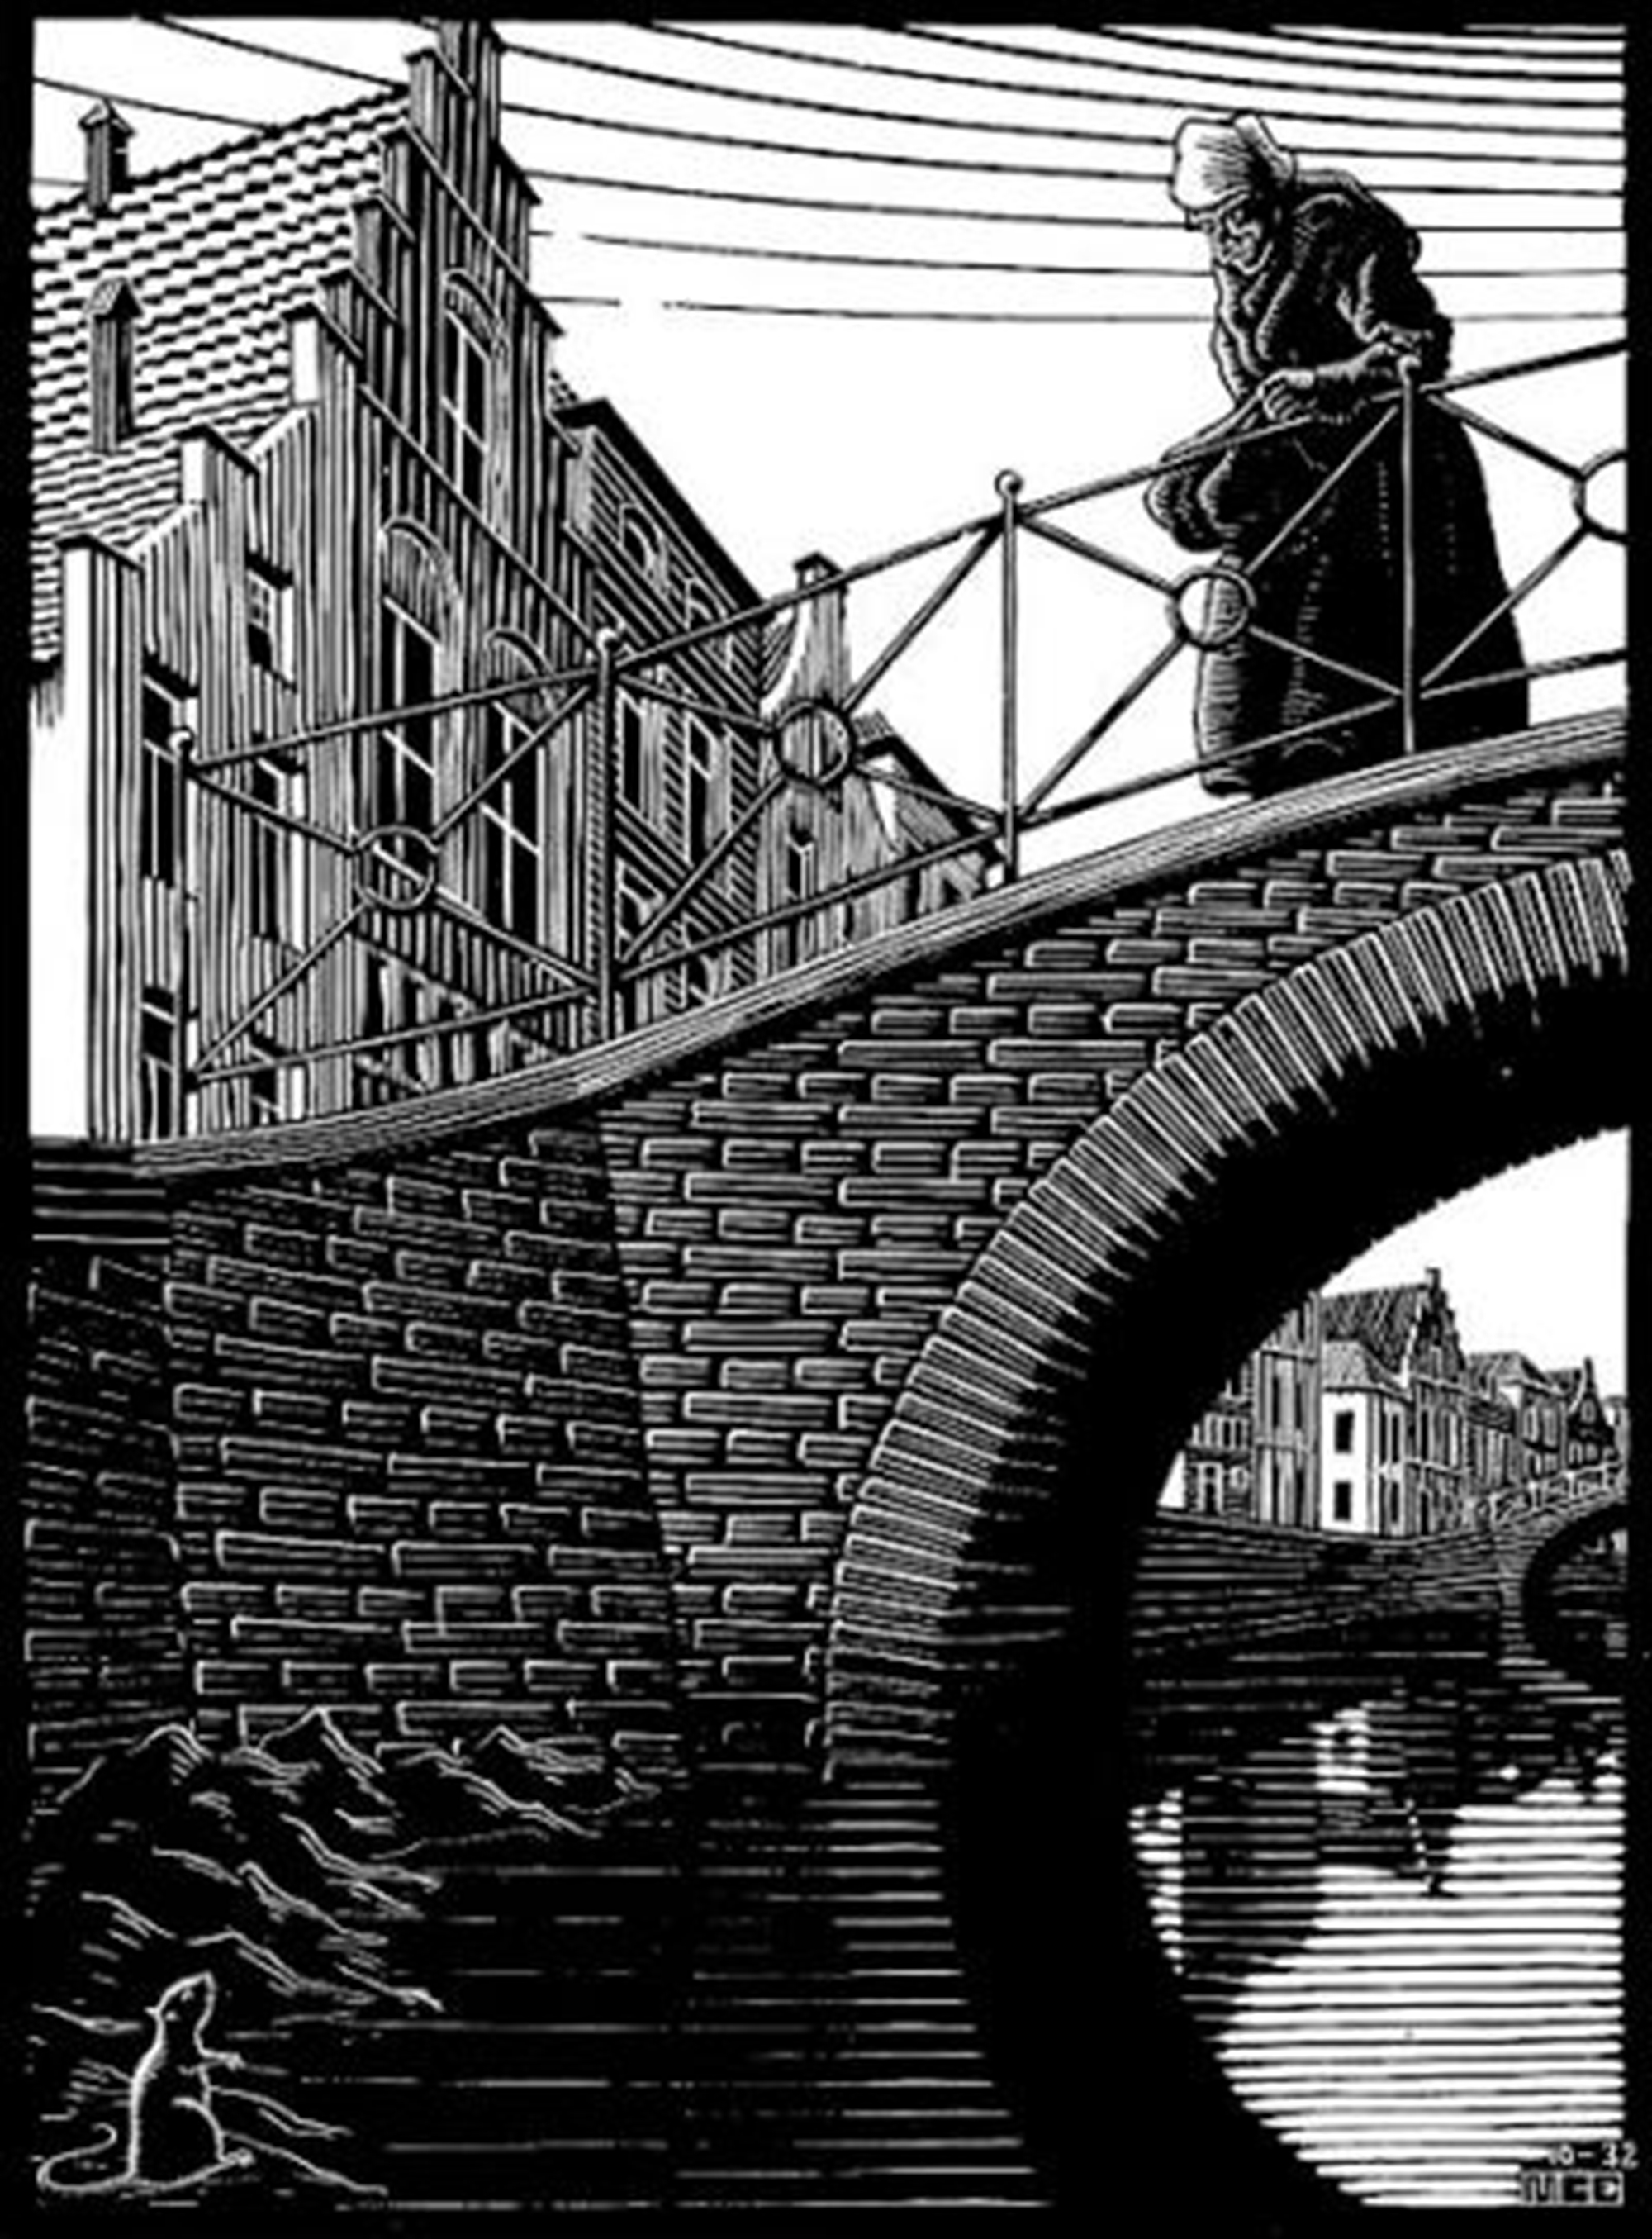 Scholastica (The Bridge) by M.C. Escher